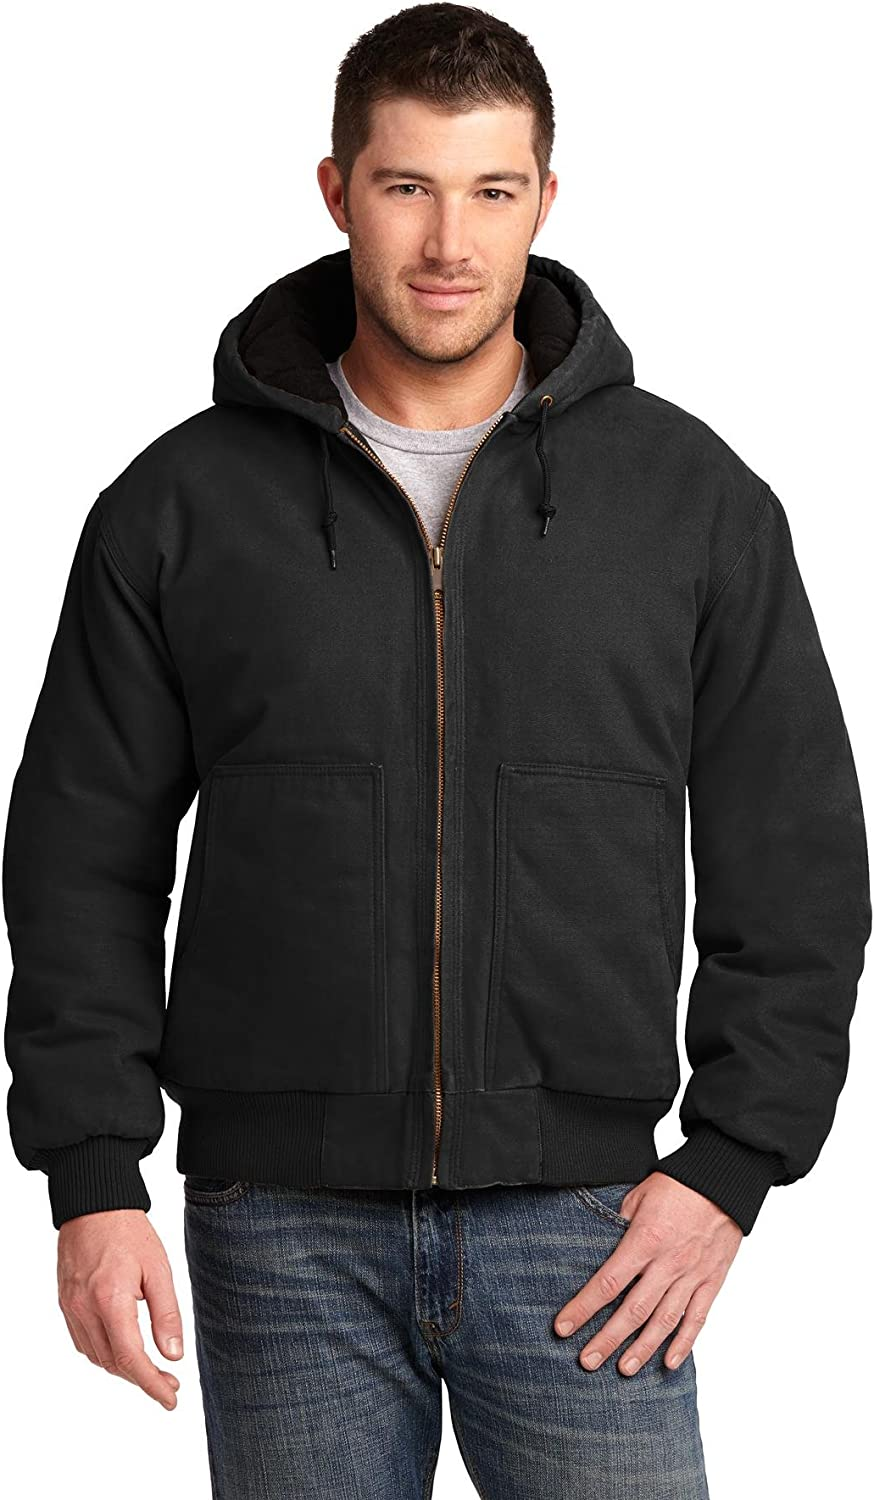 Cornerstone Mens Washed Duck Cloth Insulated Hooded Work Jacket